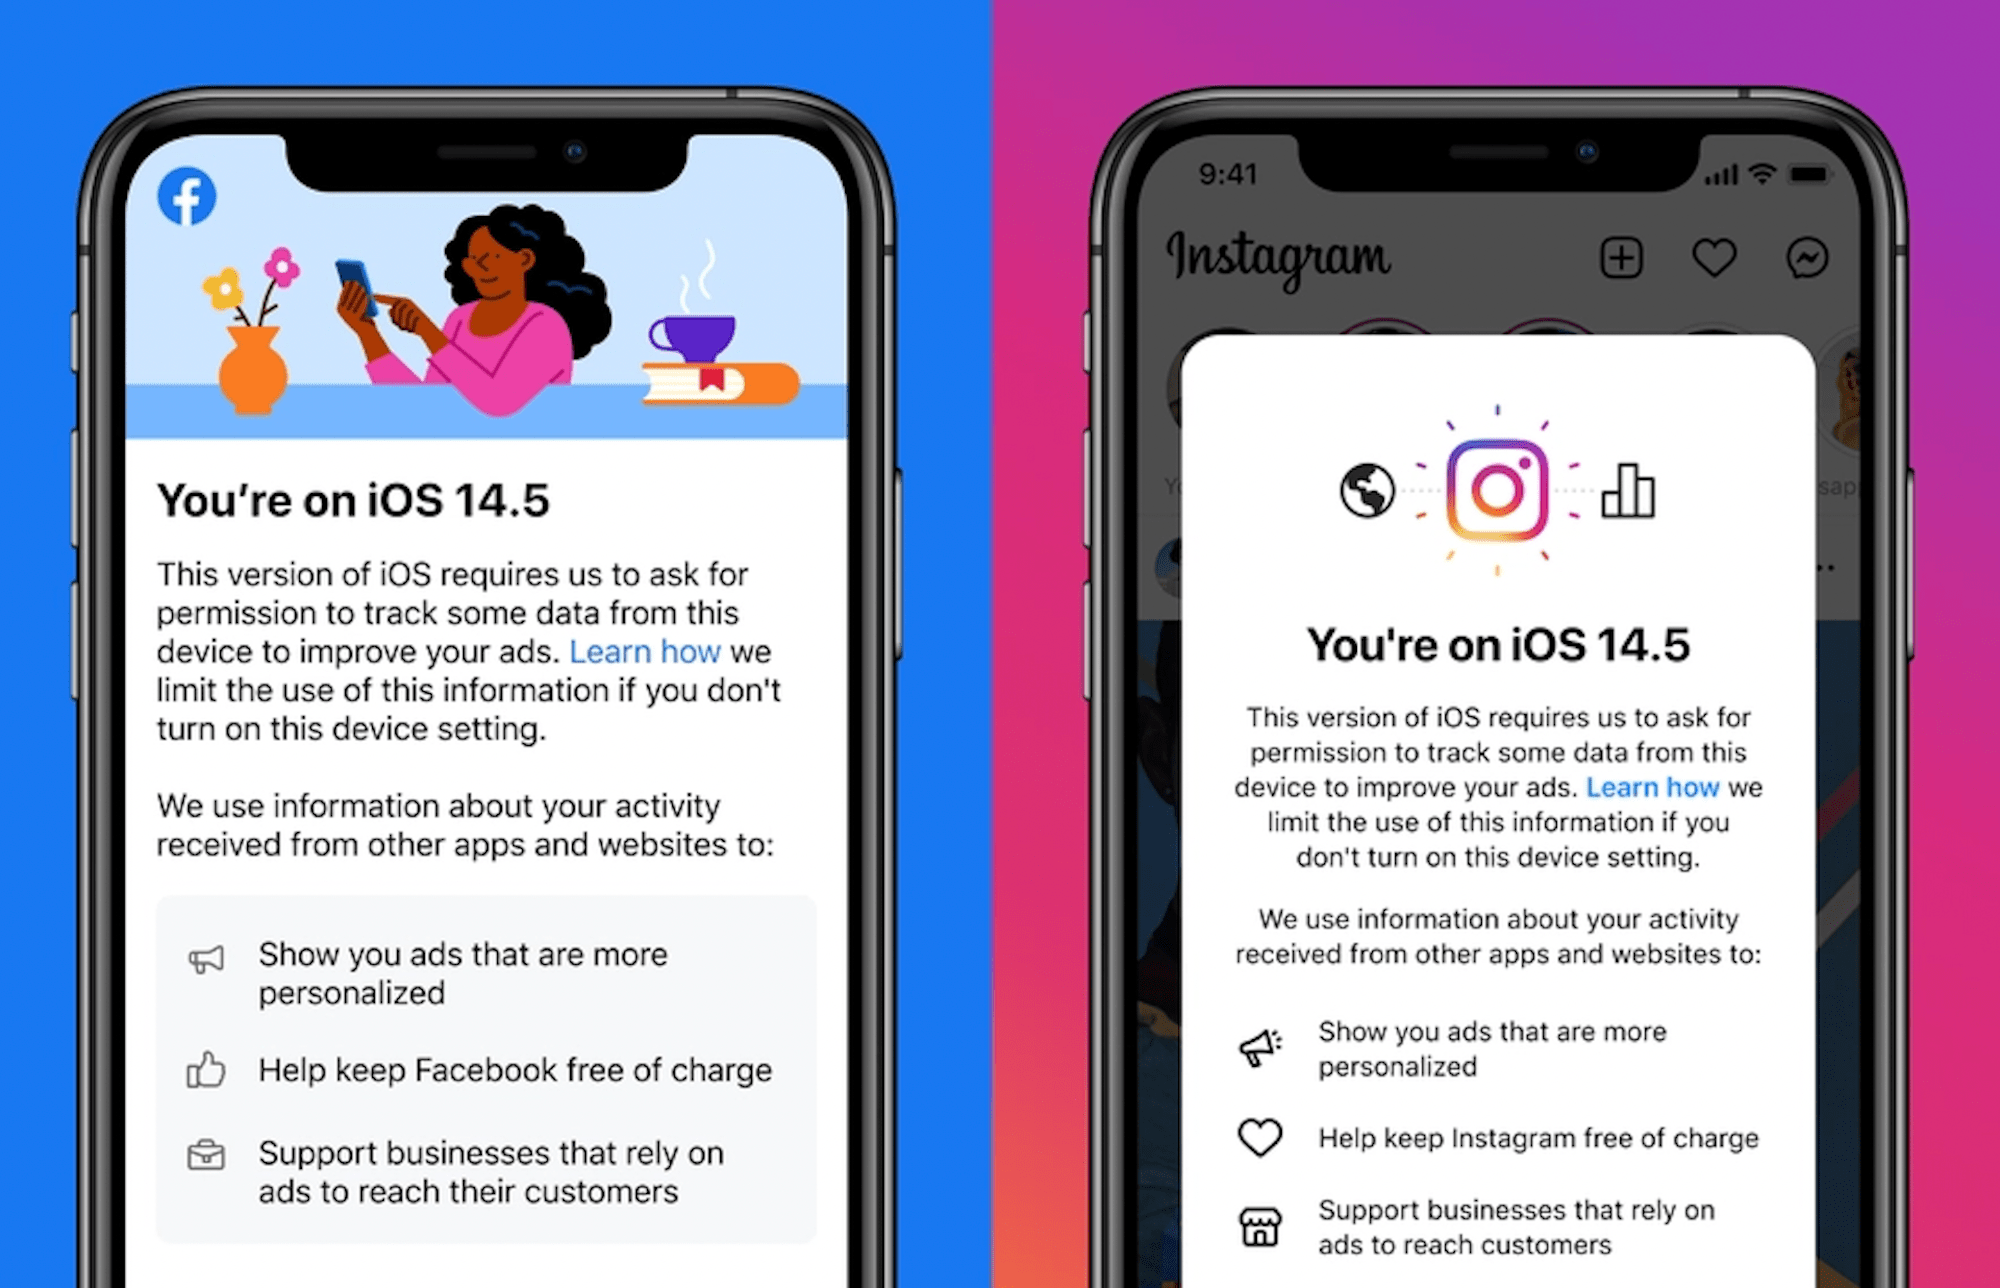 iOS 14.5 users asked to enable Facebook Tracking to continue using its Apps for free